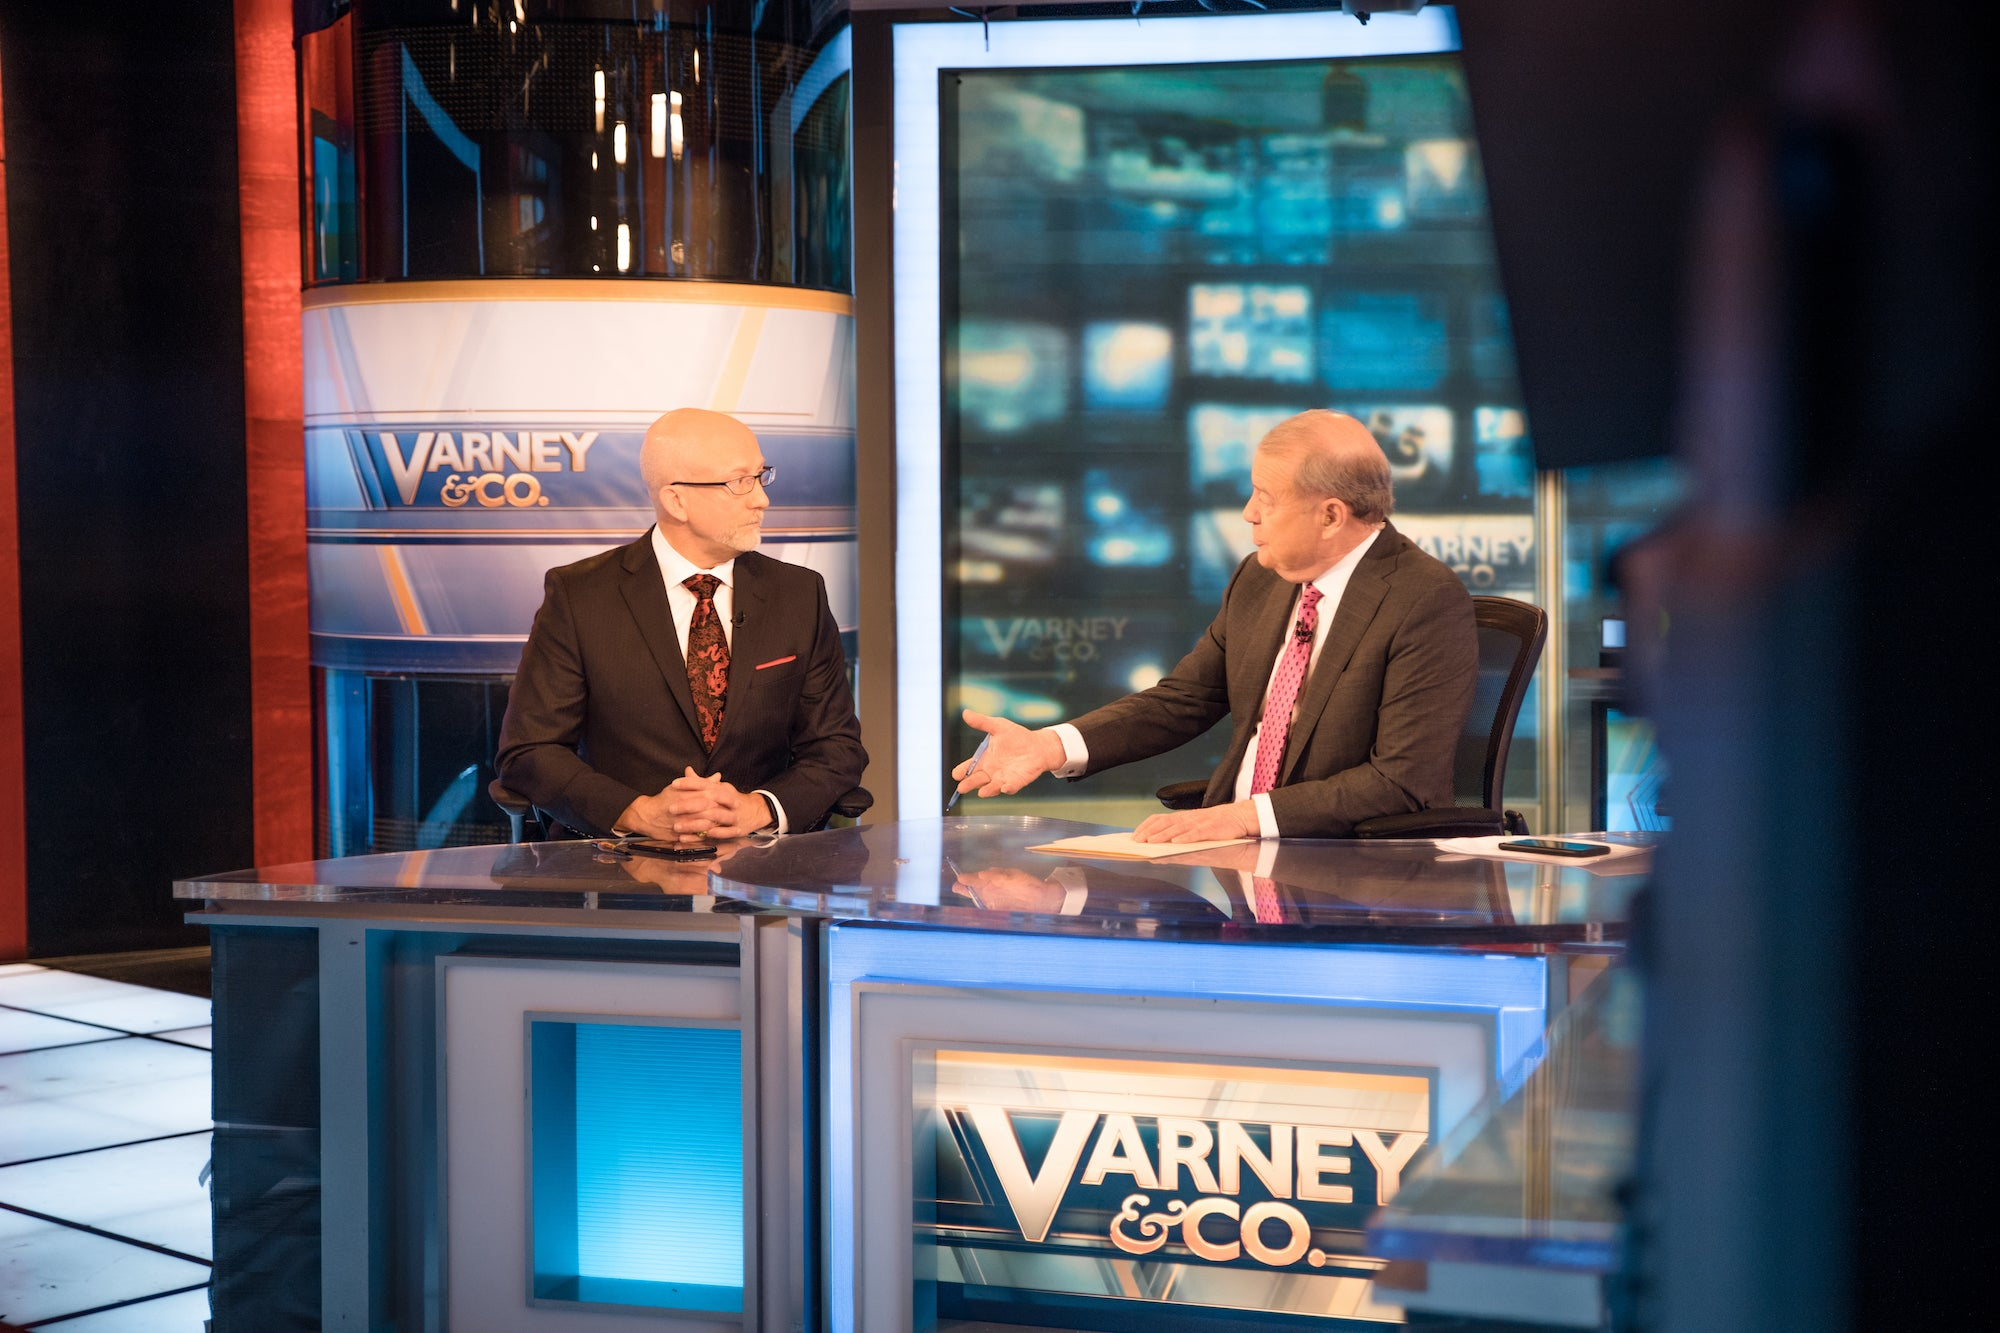 Keith Fitz-Gerald and Stuart Varney